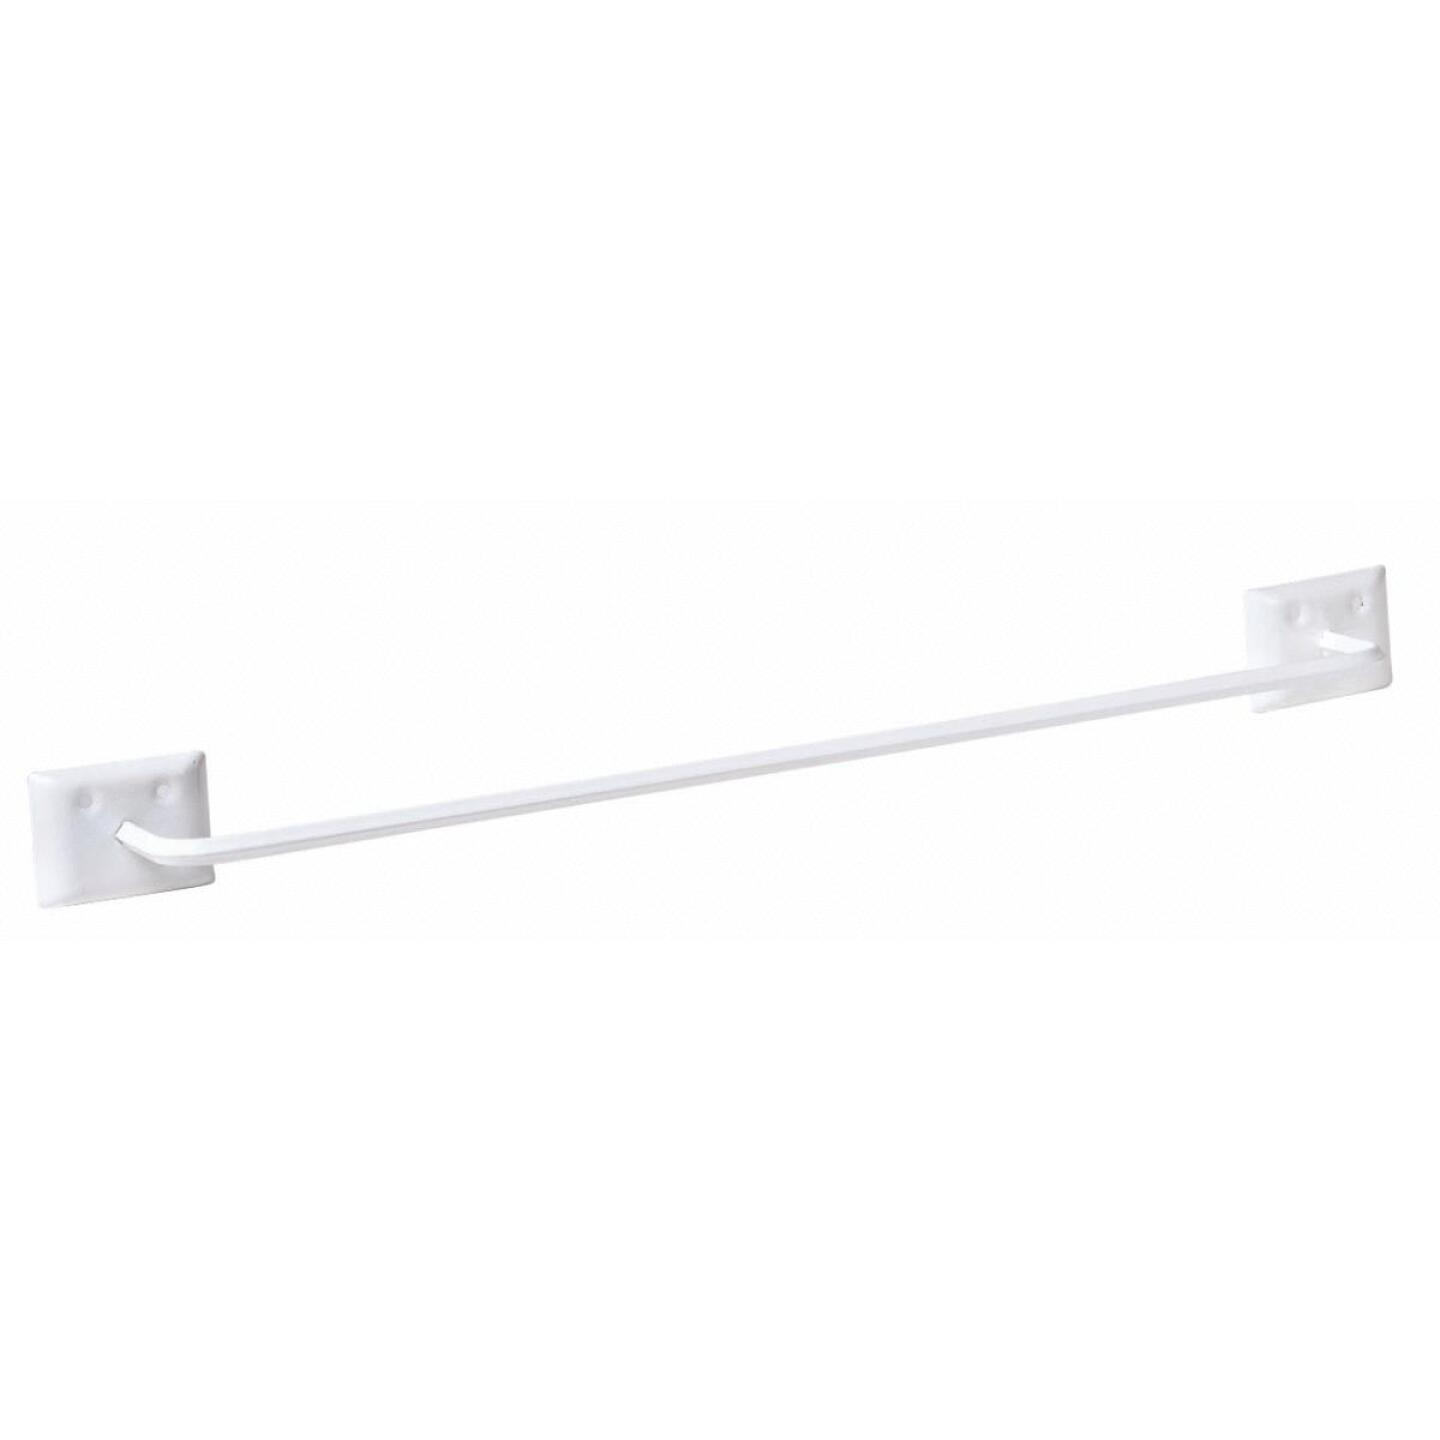 Decko Diamond Bar Design 18 In. White Towel Bar Image 1